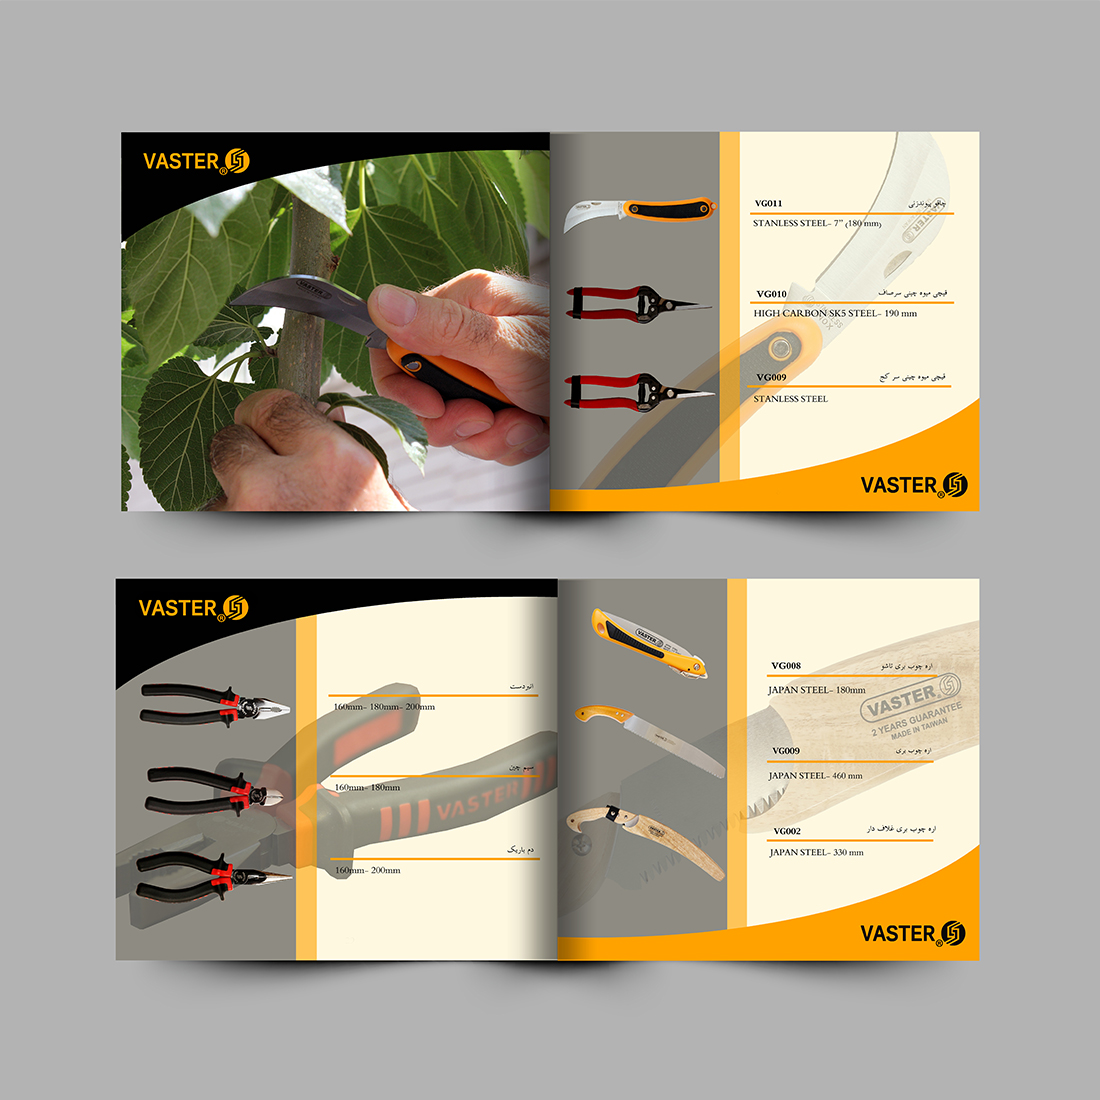 mananeh.art - Brochure design Graphic design - Vaster 02